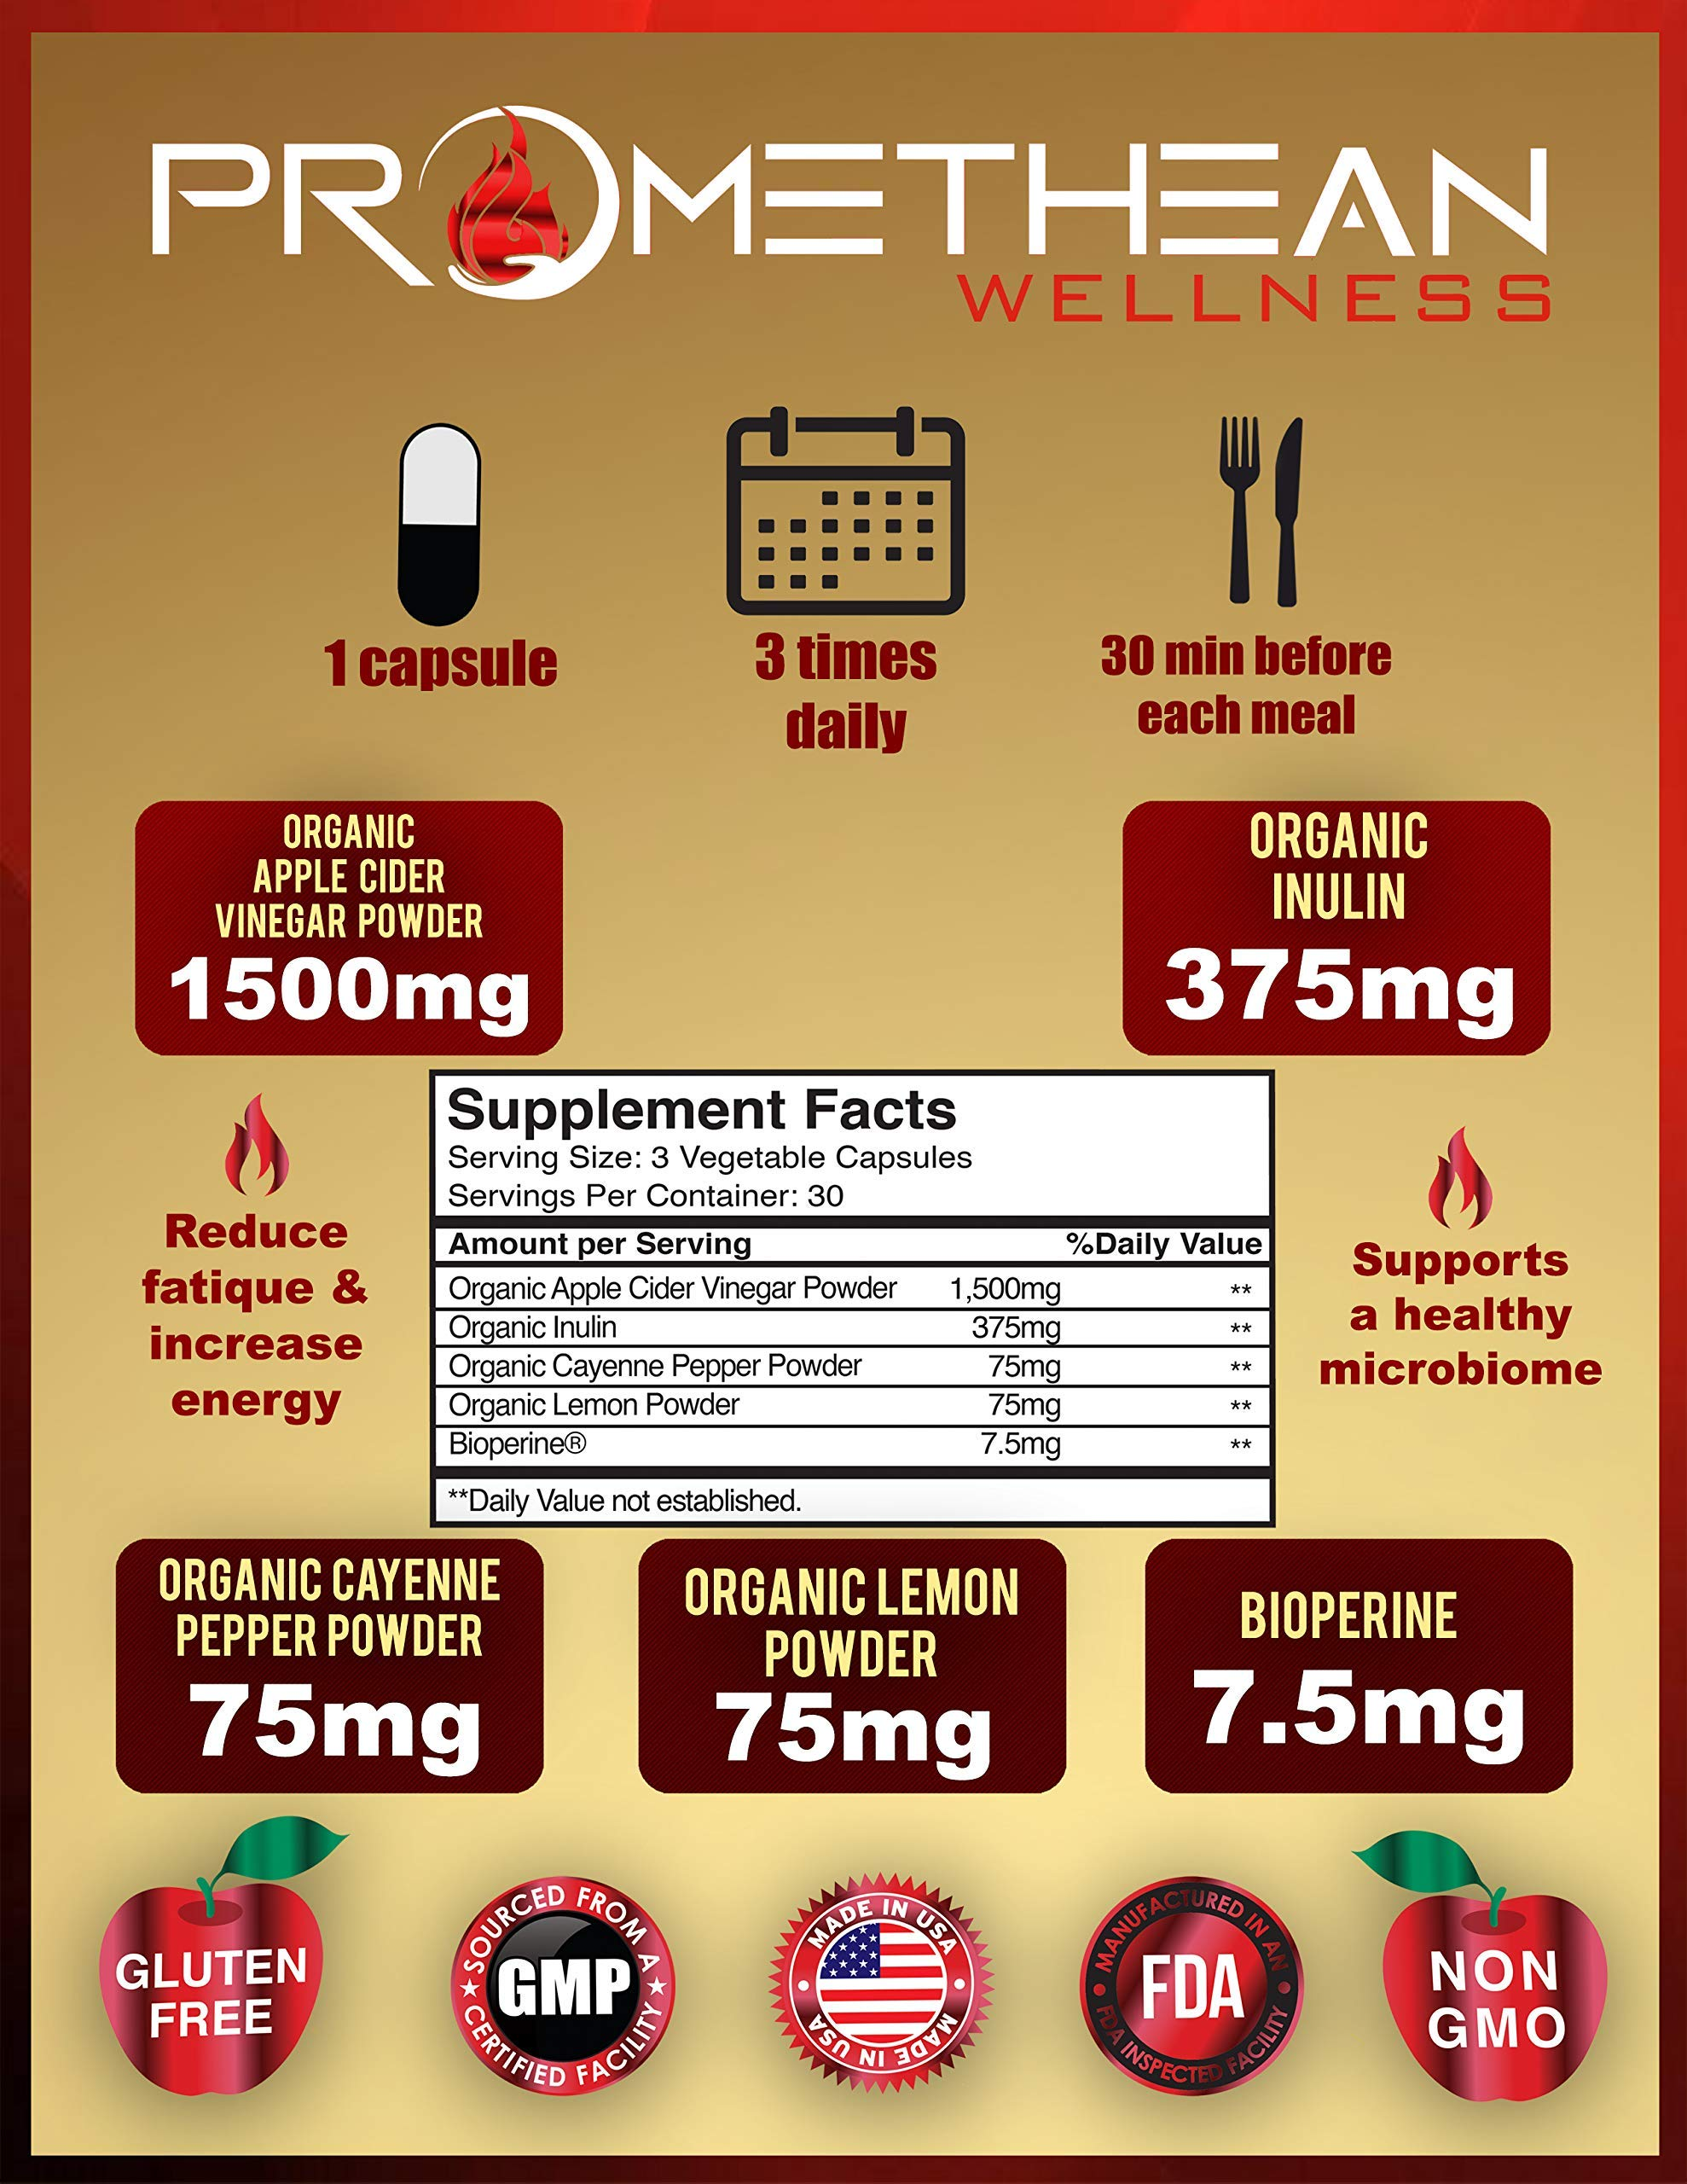 Organic Apple Cider Vinegar Capsules ACV PRO Diet Pills Detox Cleanse for Weight Loss Raw Unfiltered With Mother Powder Supplements Tablets Vitamins Cayenne Pepper Inulin Prebiotics Lemon 1500mg 90 ct by Promethean Wellness LLC (Image #2)